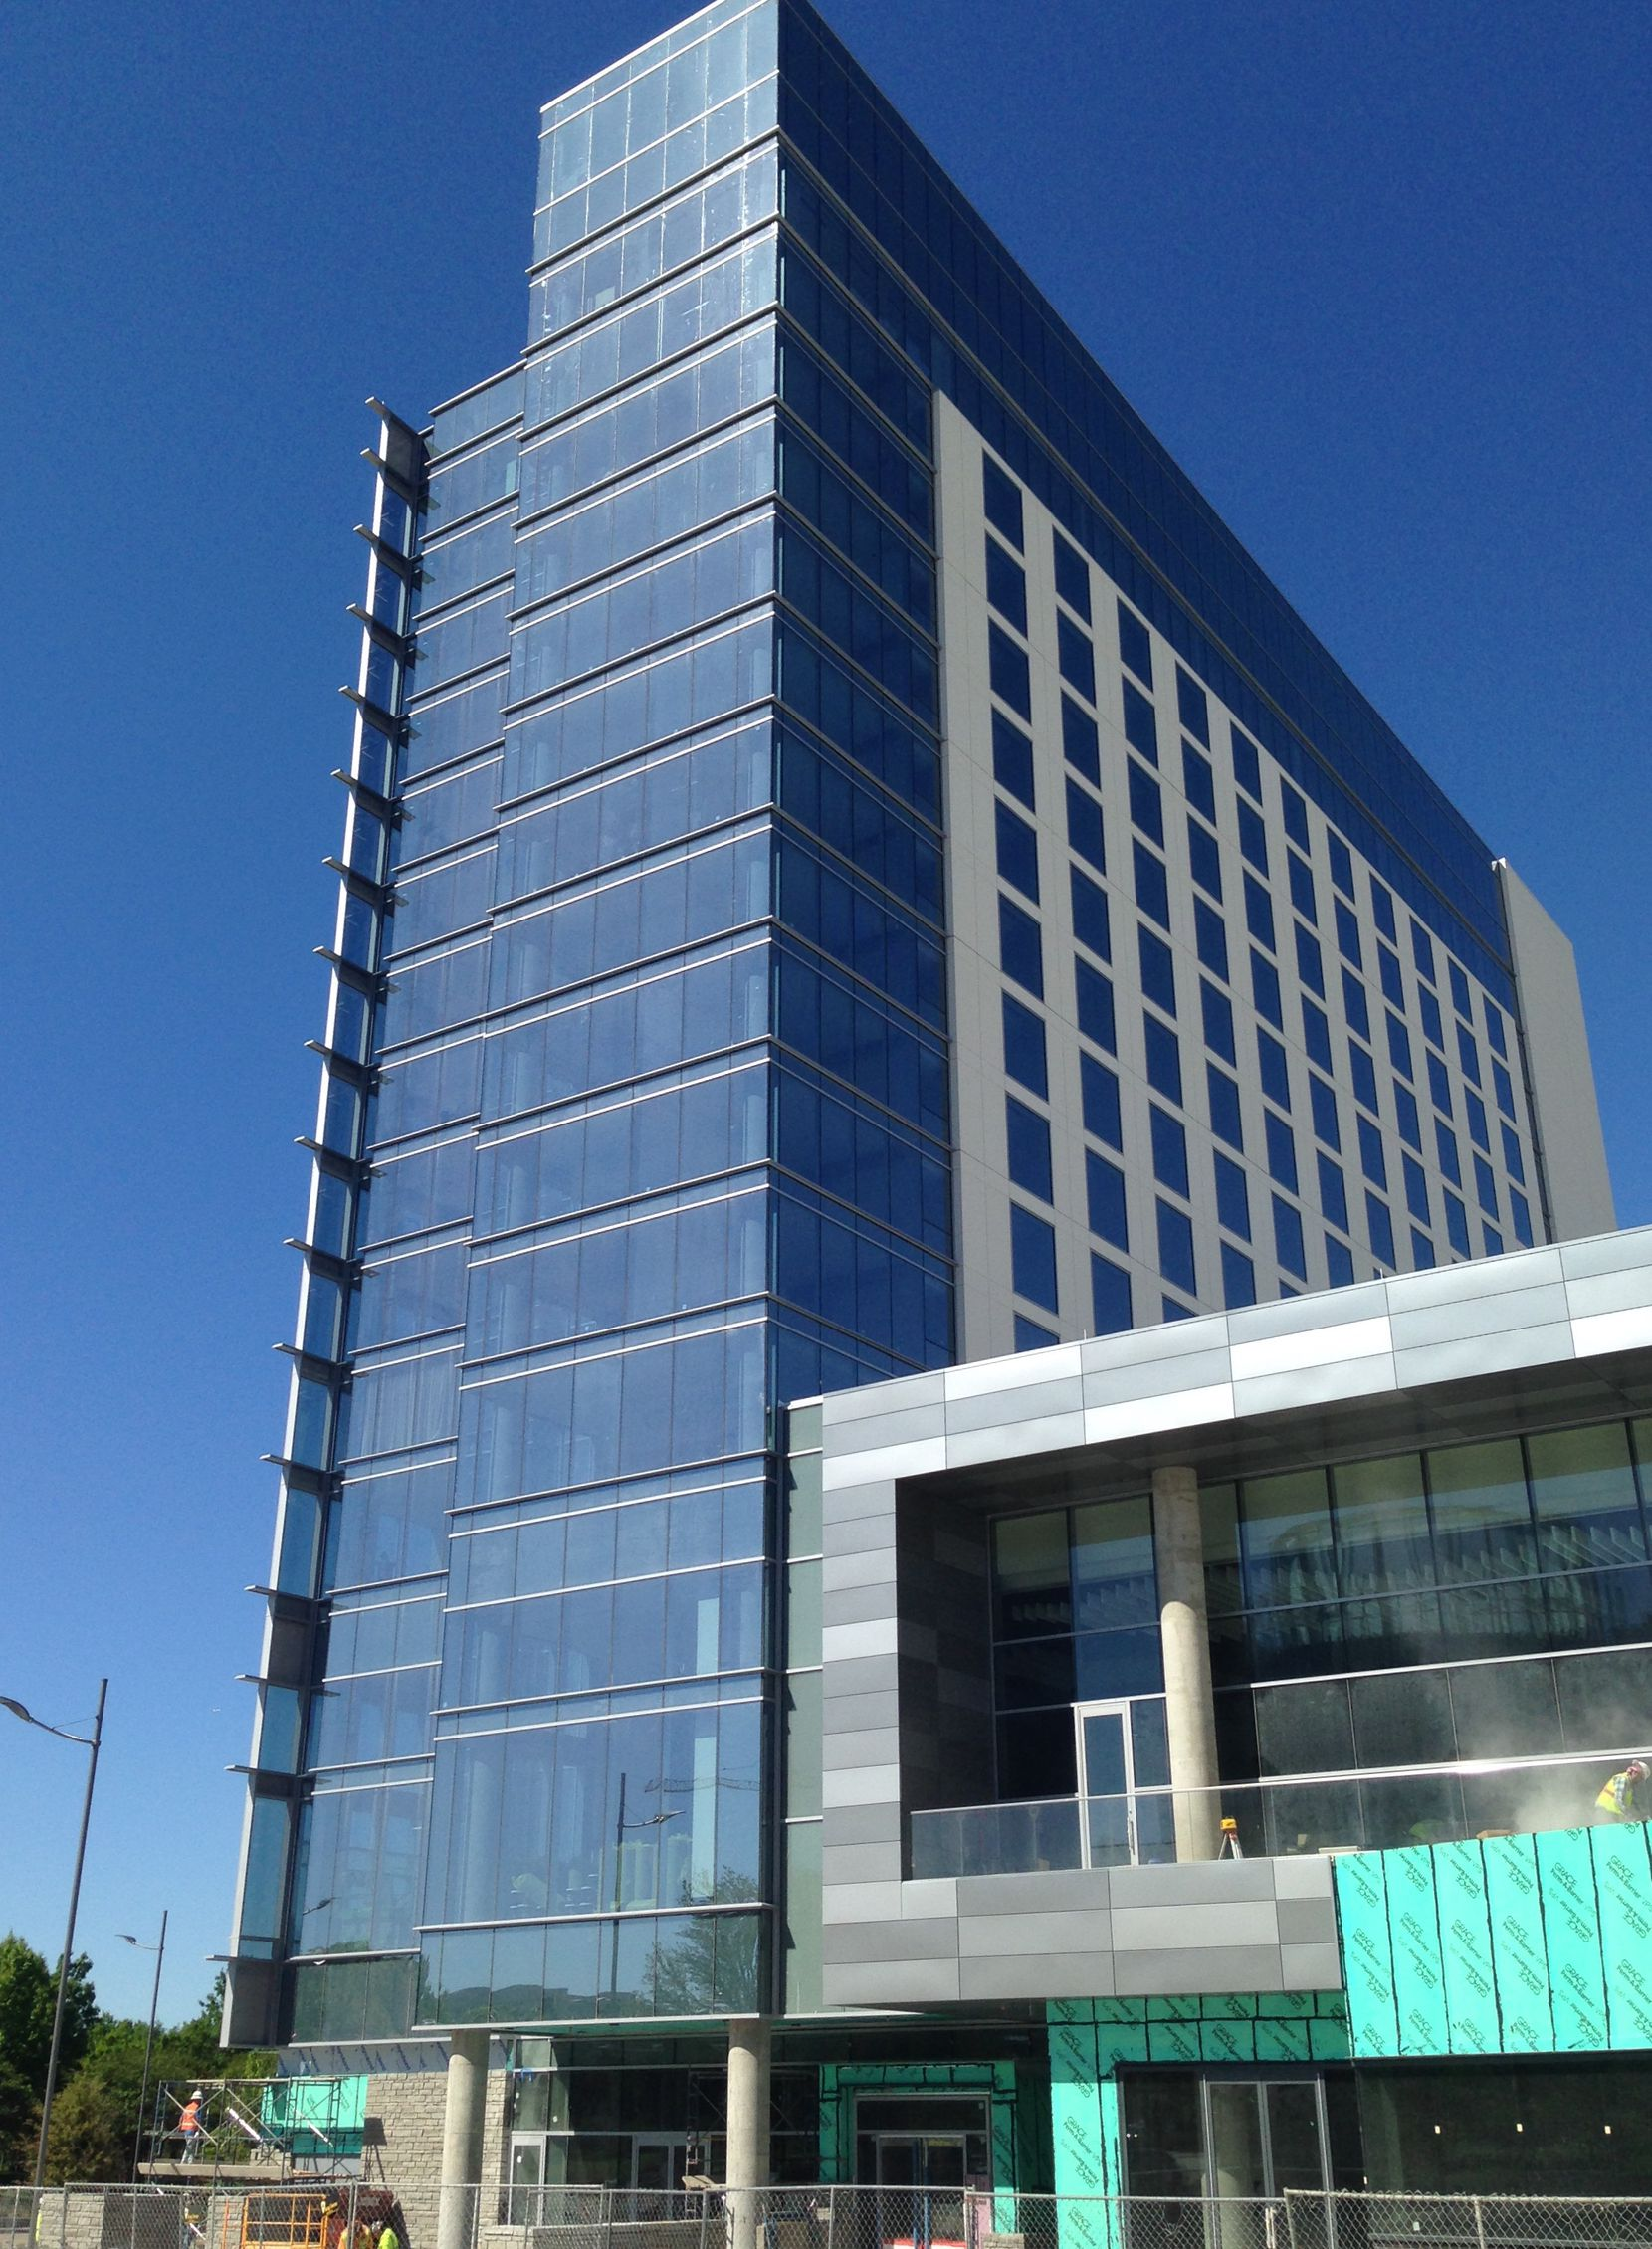 The 15-story Renaissance Hotel in Legacy West opens in June.